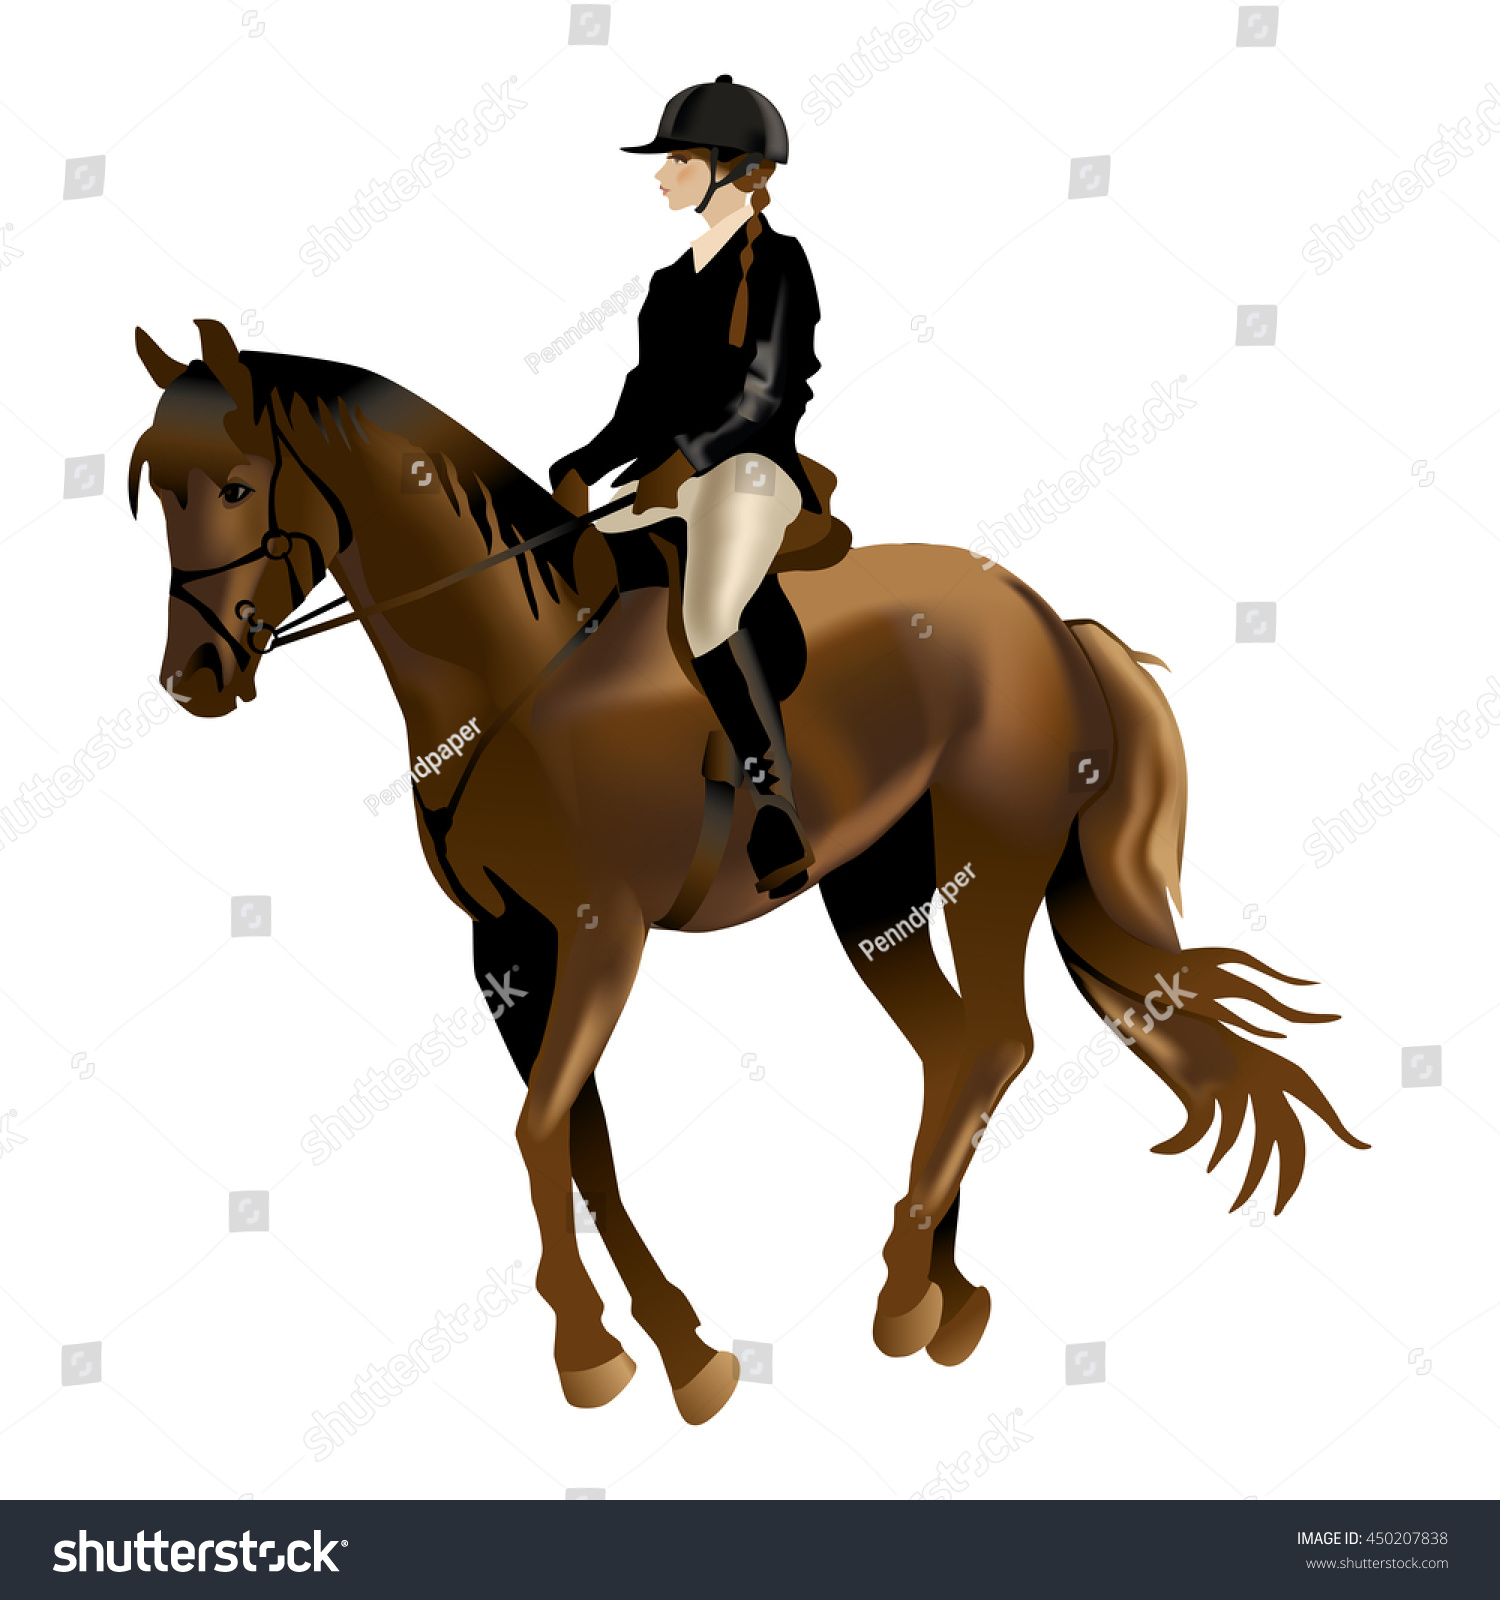 Horse Rider Realistic Vector Illustration Isolated Stock Vector Royalty Free 450207838